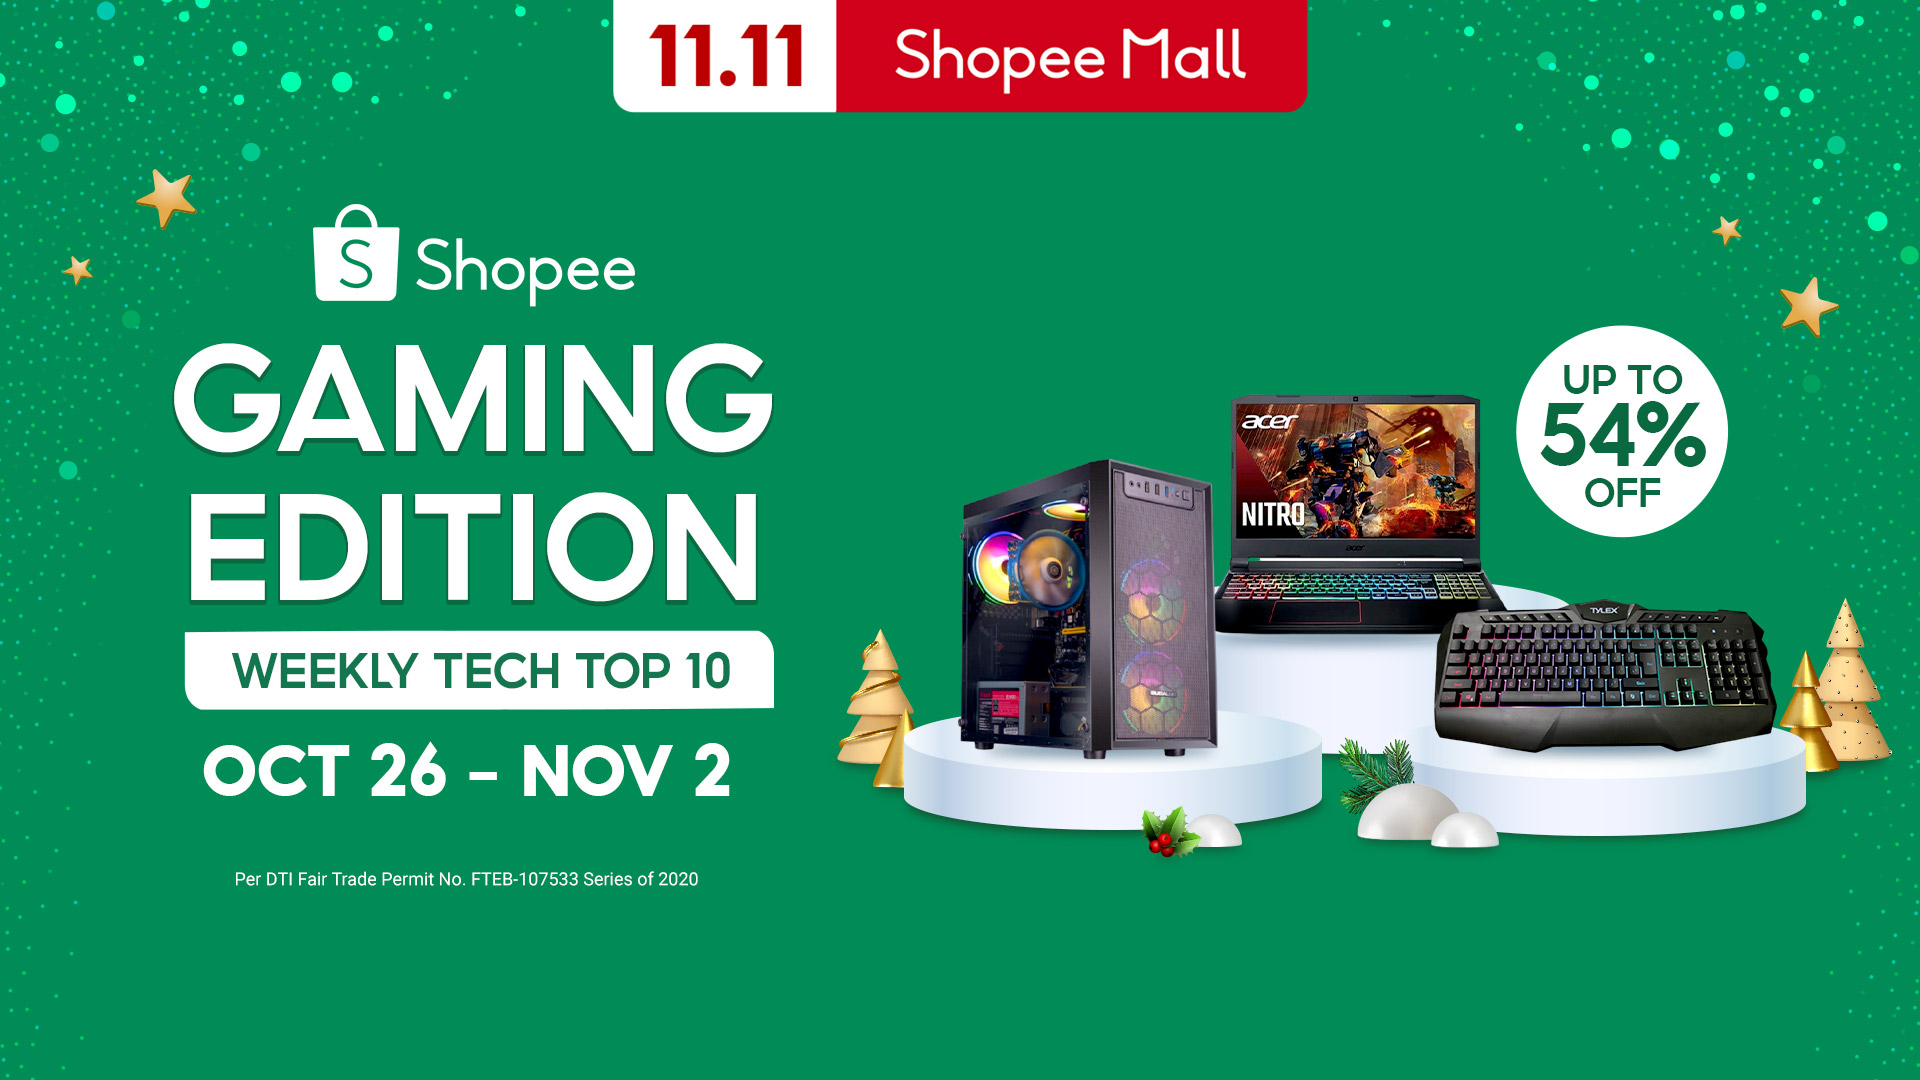 Get your game on with these fantastic deals of authentic gaming products with up to 54% off on Shopee from October 26 to November 2